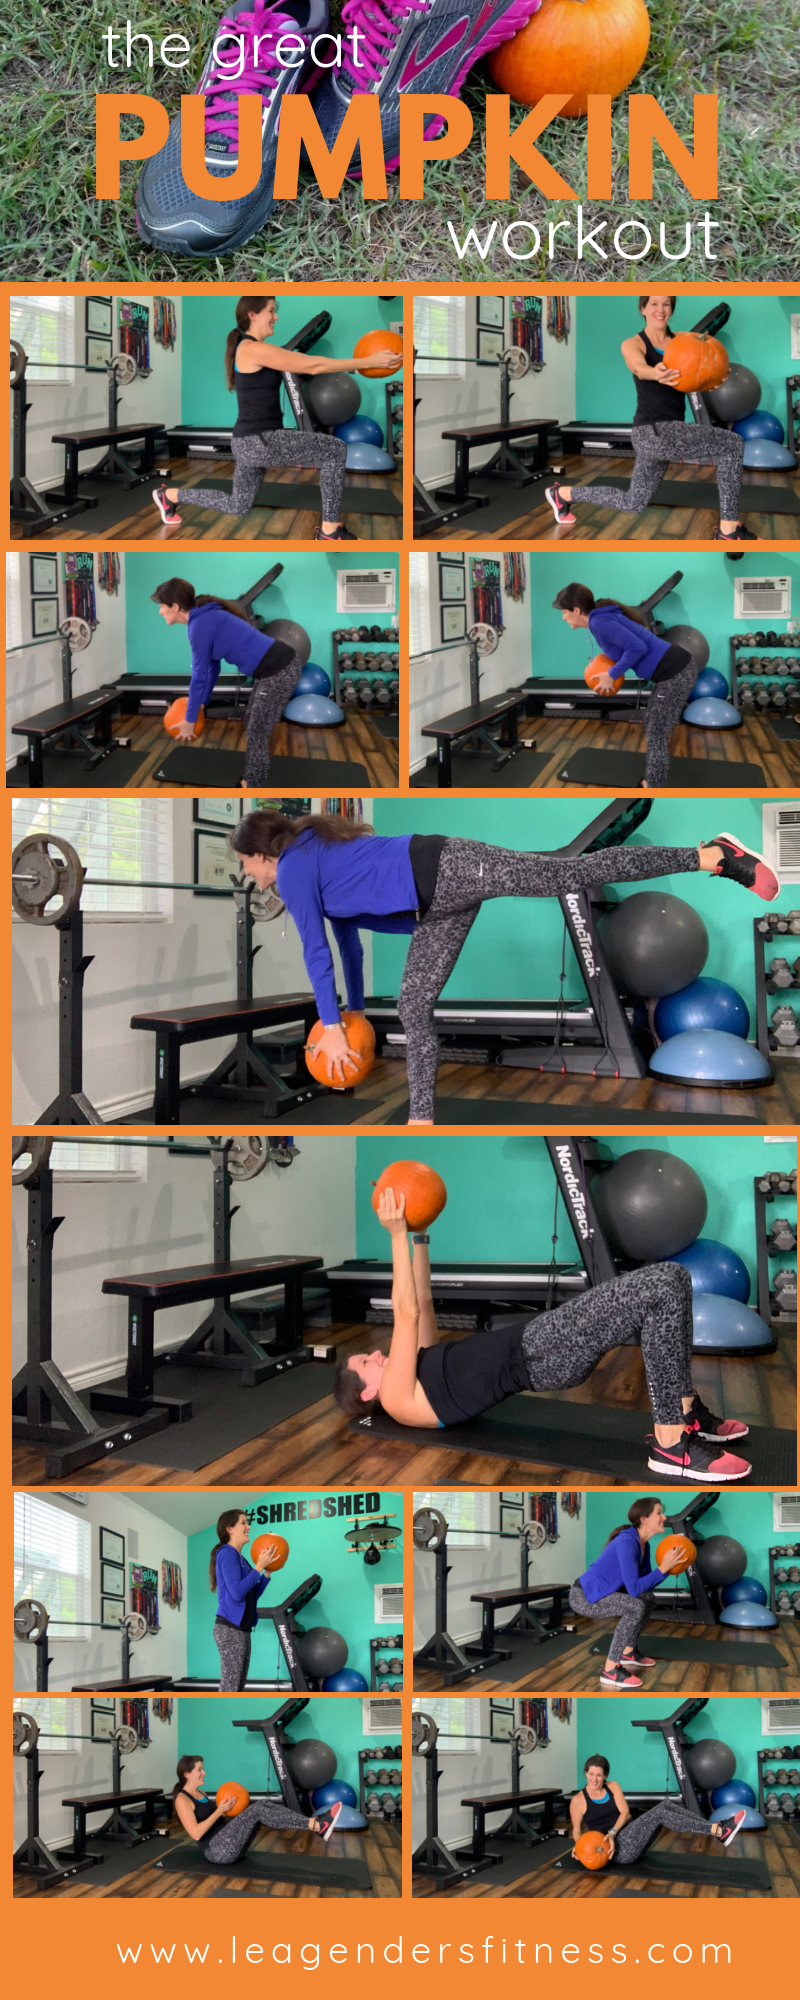 the great pumpkin workout exercises. Save to your favorite Pinterest board for later.